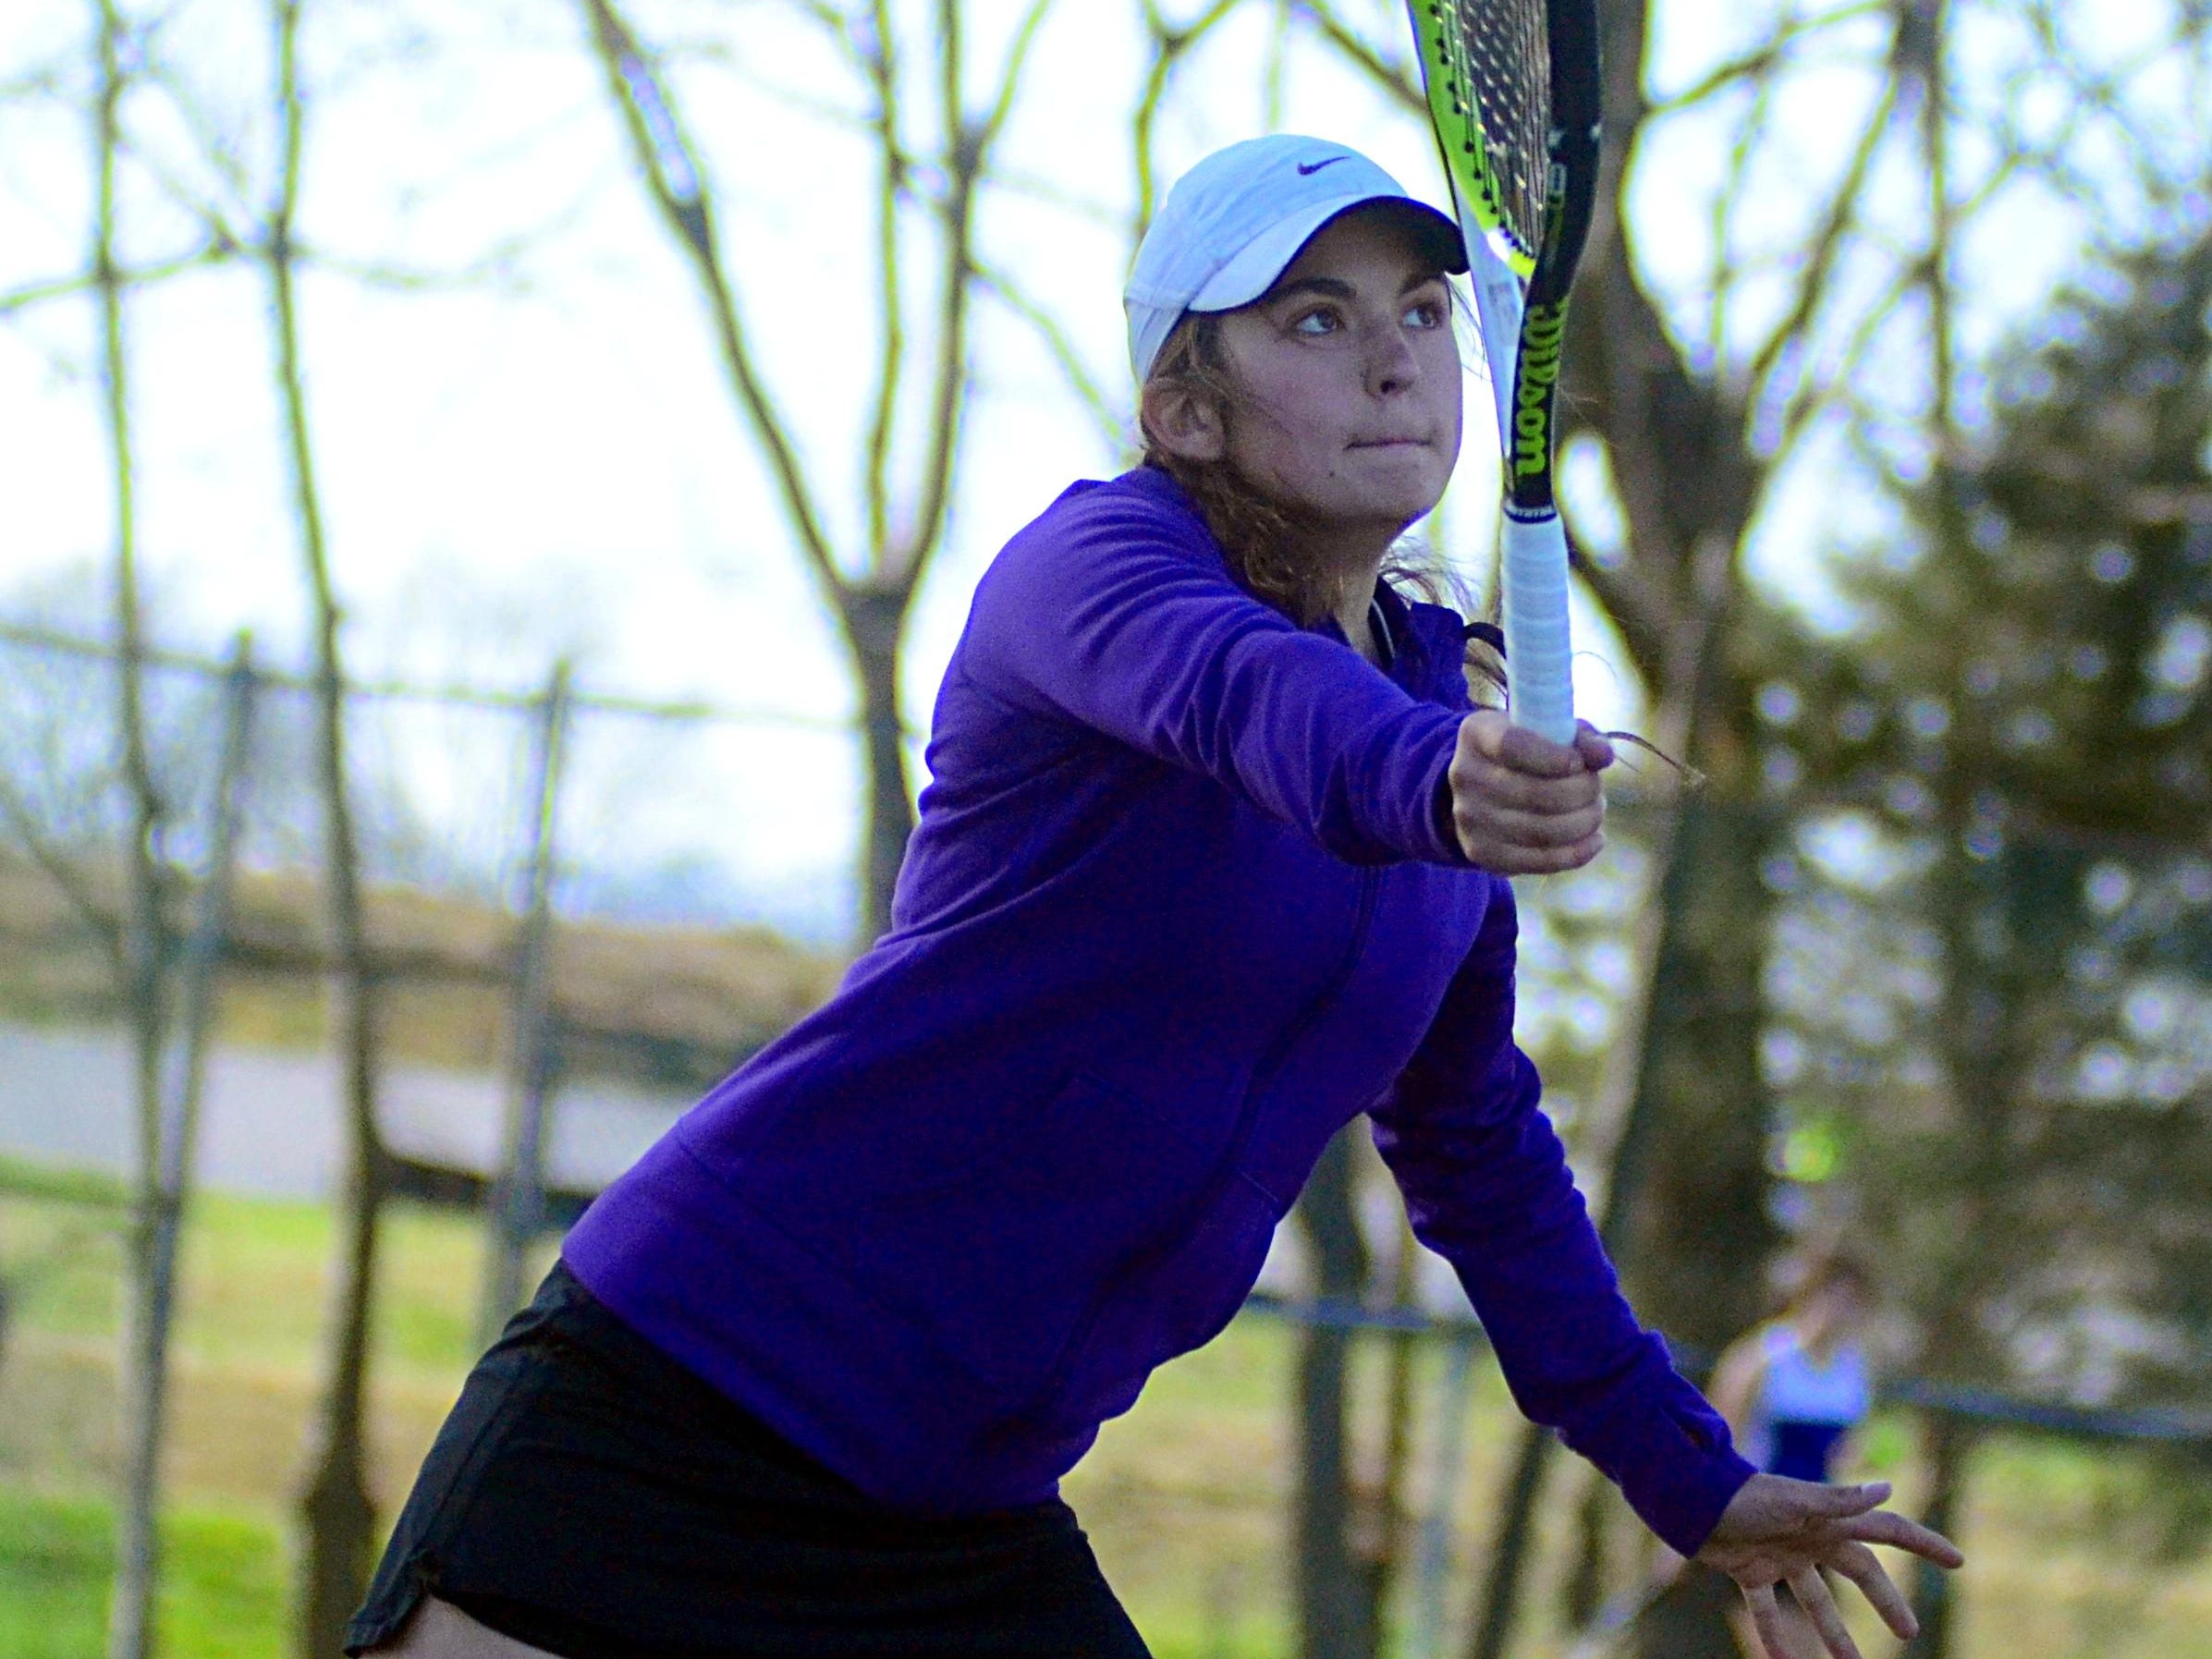 Merrol Hyde Magnet senior Lauren Heinrich hits a volley near the net during Tuesday afternoon's match against Station Camp. Heinrich won her singles match, but the Lady Hawks suffered a 7-2 loss to Station Camp.